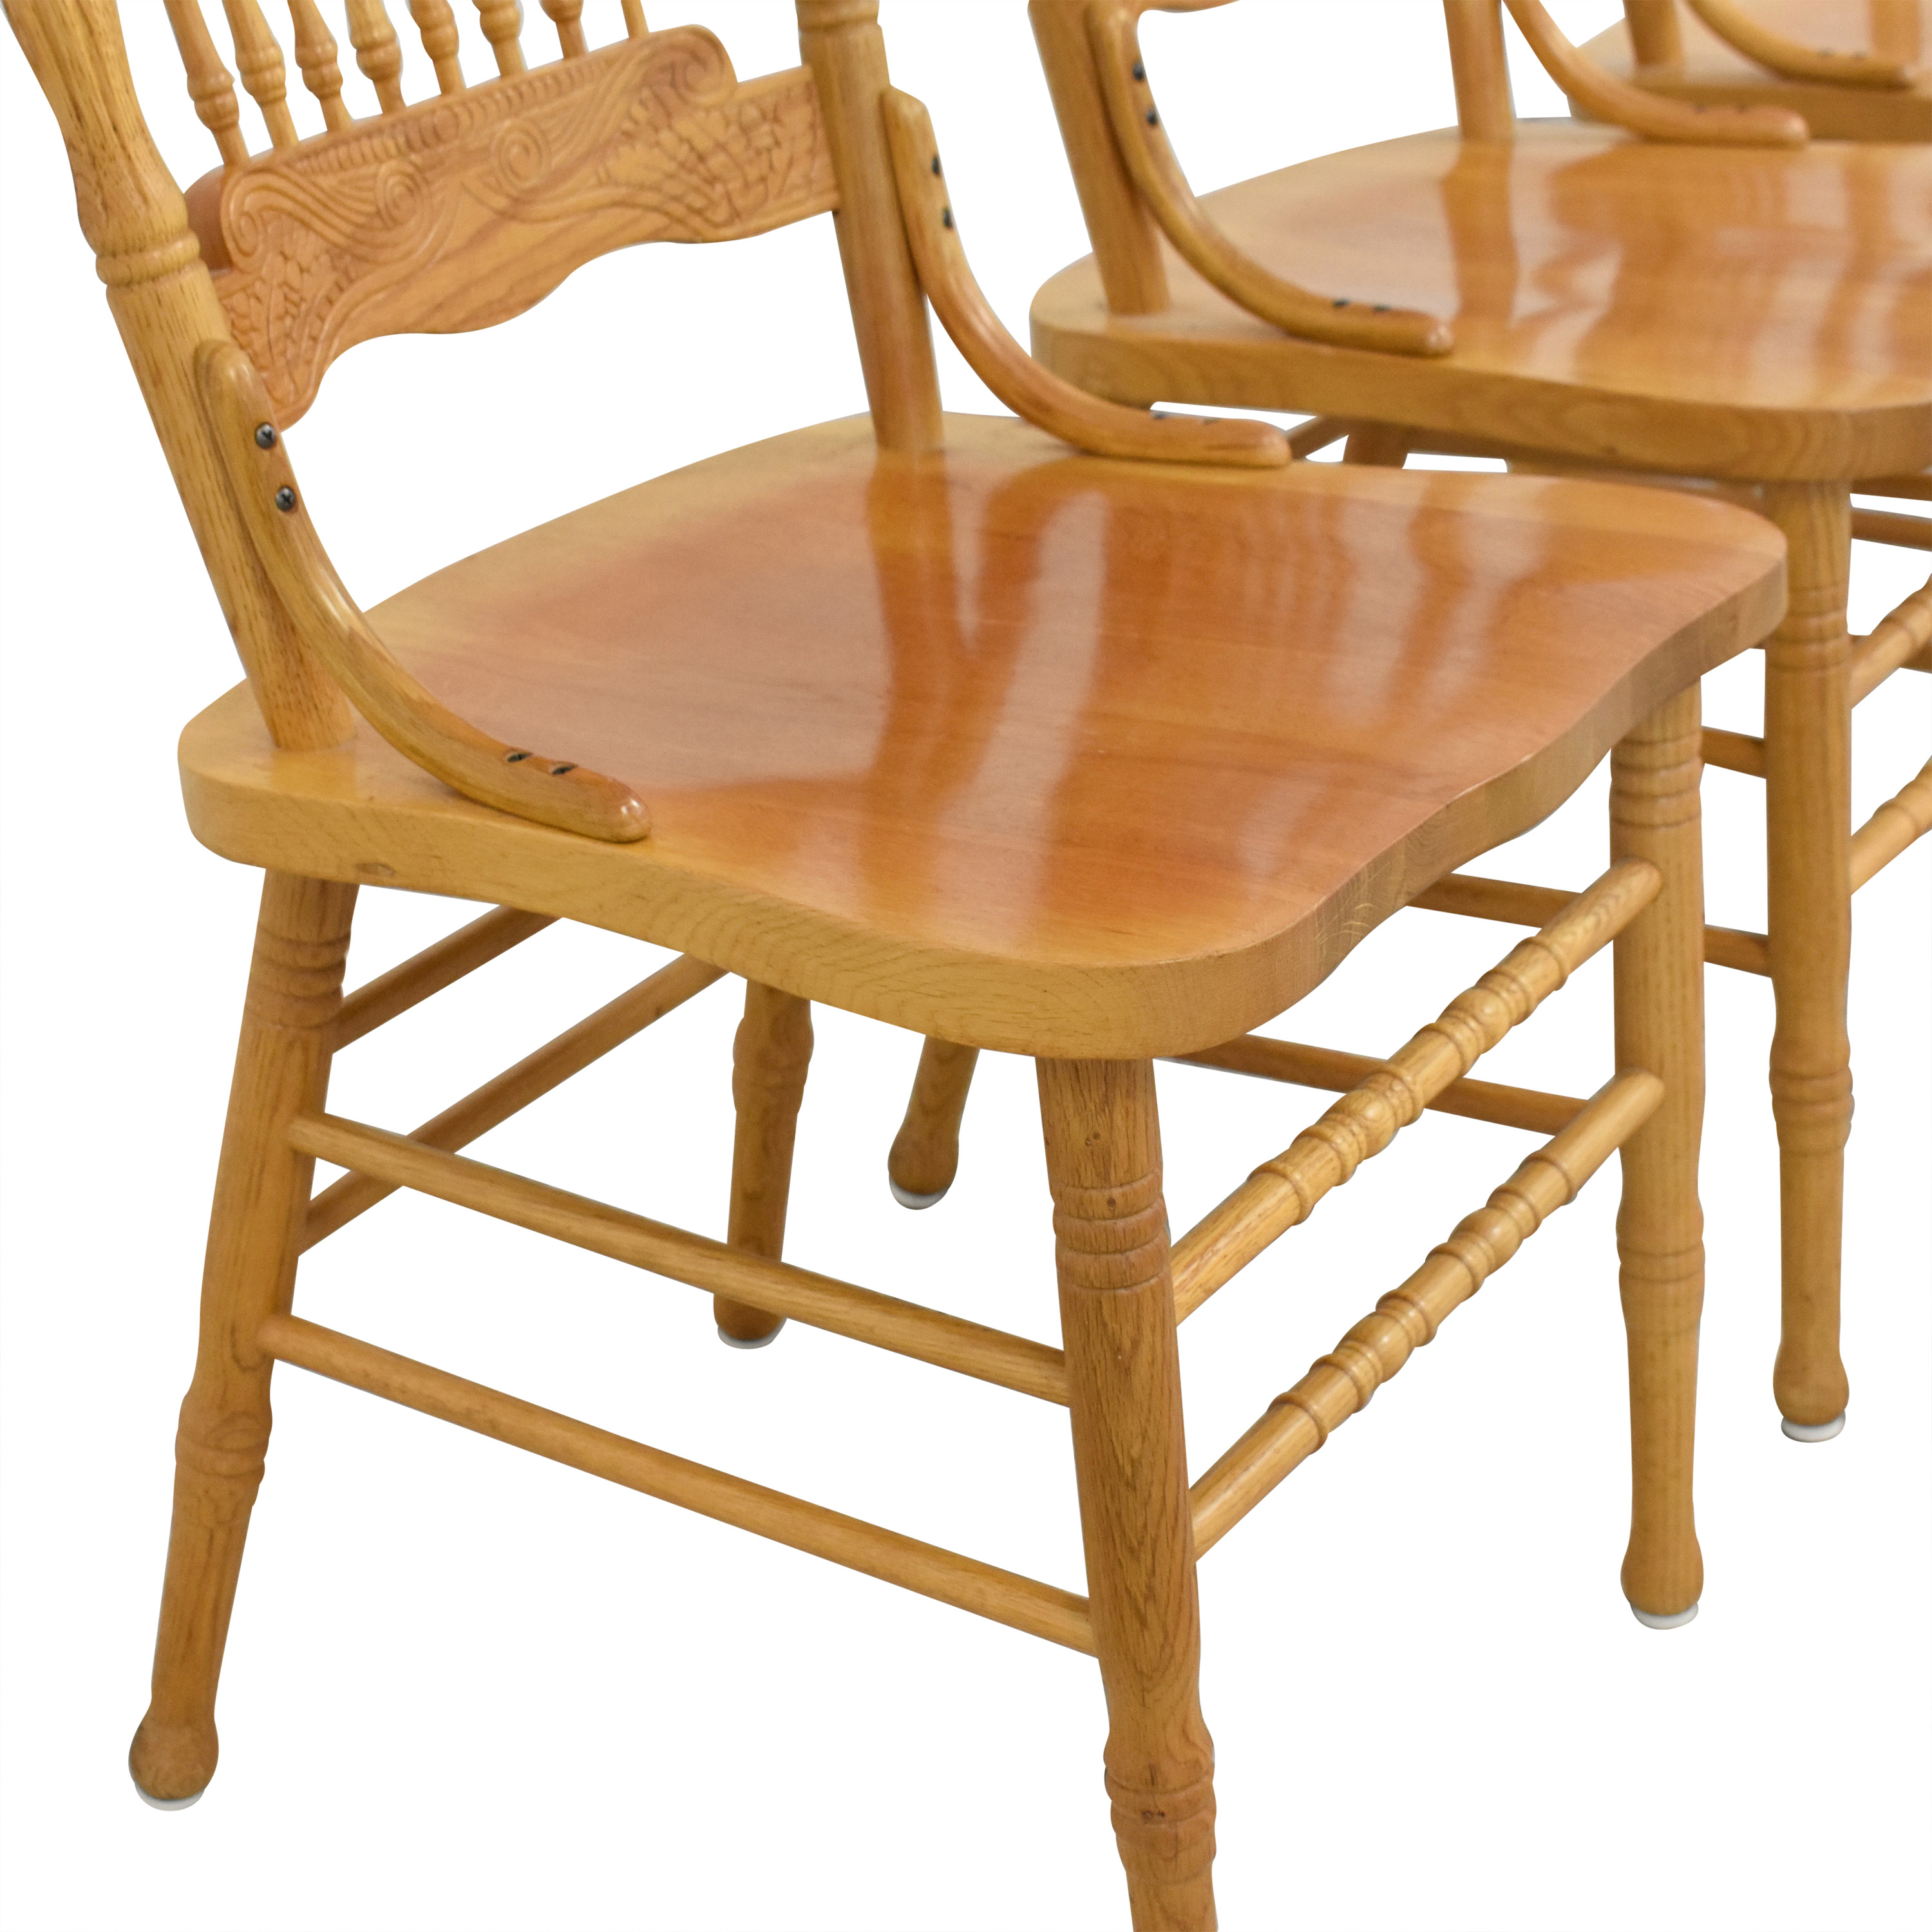 A-America Wood Carved Dining Chairs A-America Wood Furniture